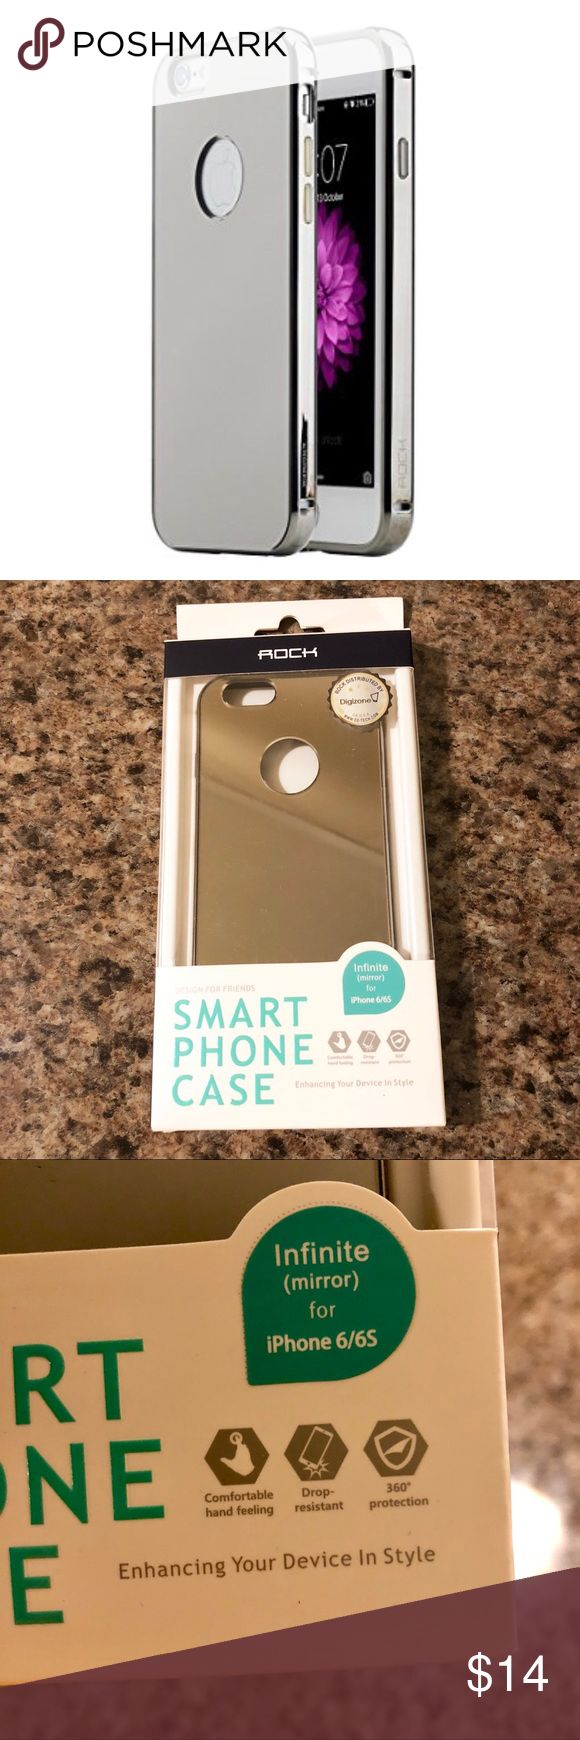 Rock Infinite Mirror Case - iPhone 6/6s NEW in box. Rock ® Apple iPhone 6 / 6S Infinite Mirror phone case in Space Gray color. With 24K Plated Aluminium Alloy Bumper Case Back Cover. Uses vacuum plating process for the aluminum alloy bumper and PC back panel for a shiny mirror effect. Hidden clasp design makes it easy to snap on or off and protect the device against scratches.  Embedded buttons are stable, durable, easy to press. Reserved signal hole on corners to keep device signal strong…